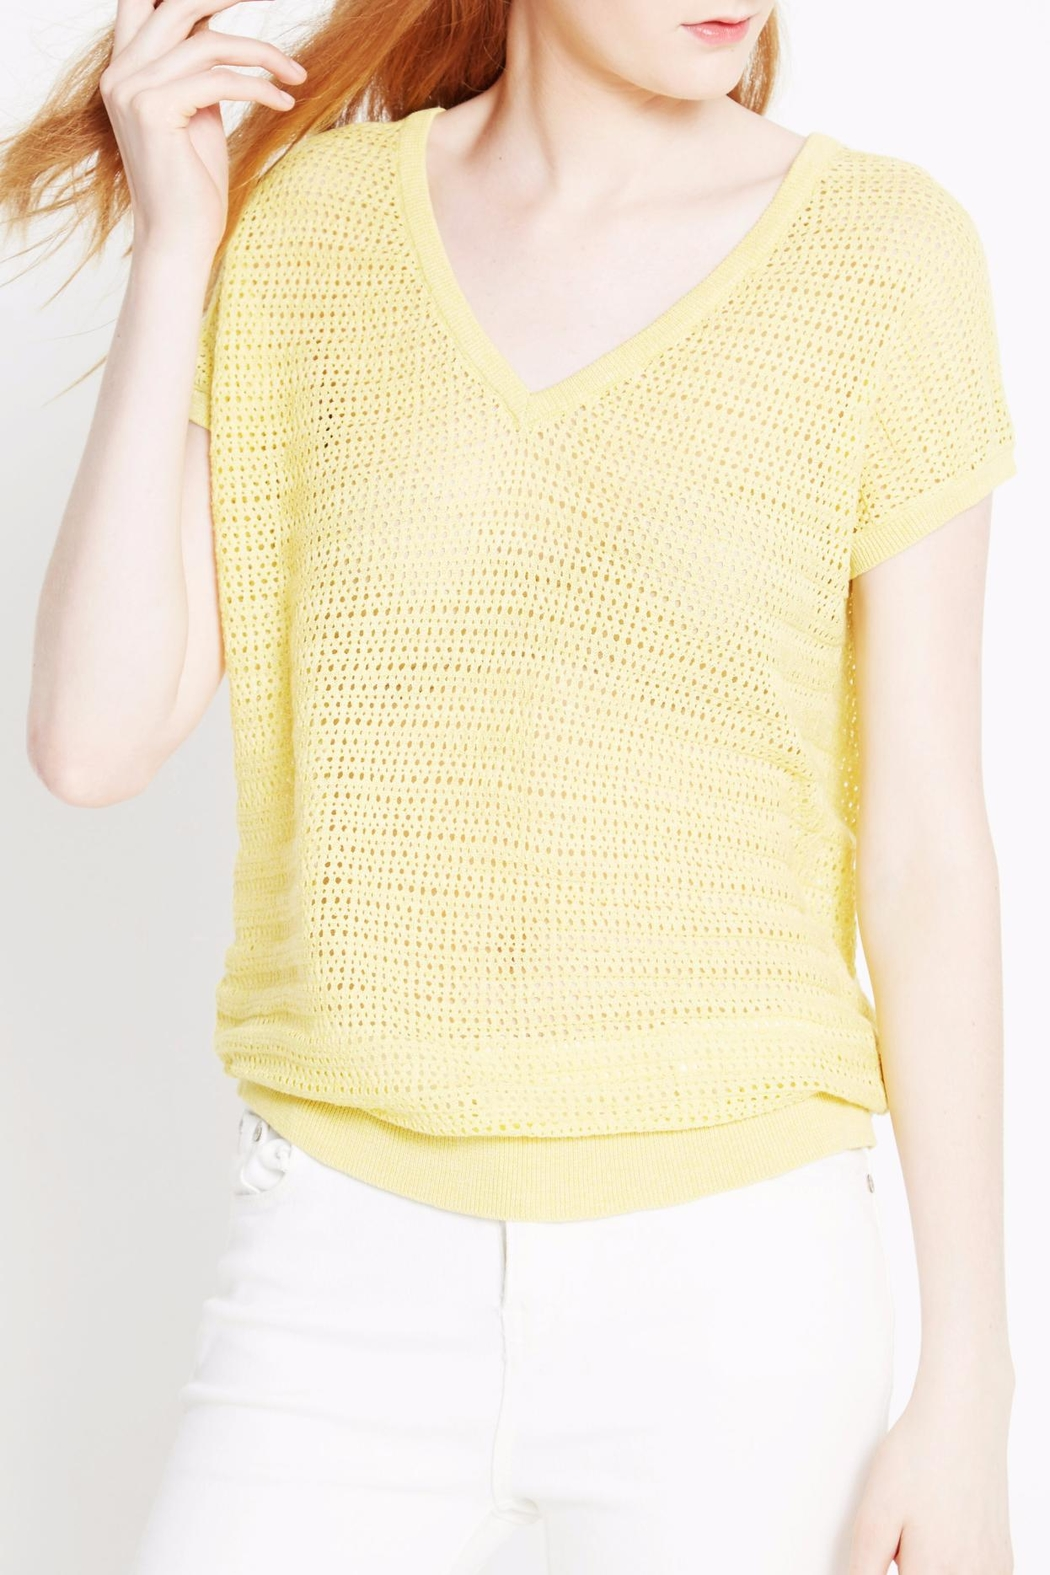 WENHUA DUVERGÉ Yellow Organic Cotton Sweater - Main Image